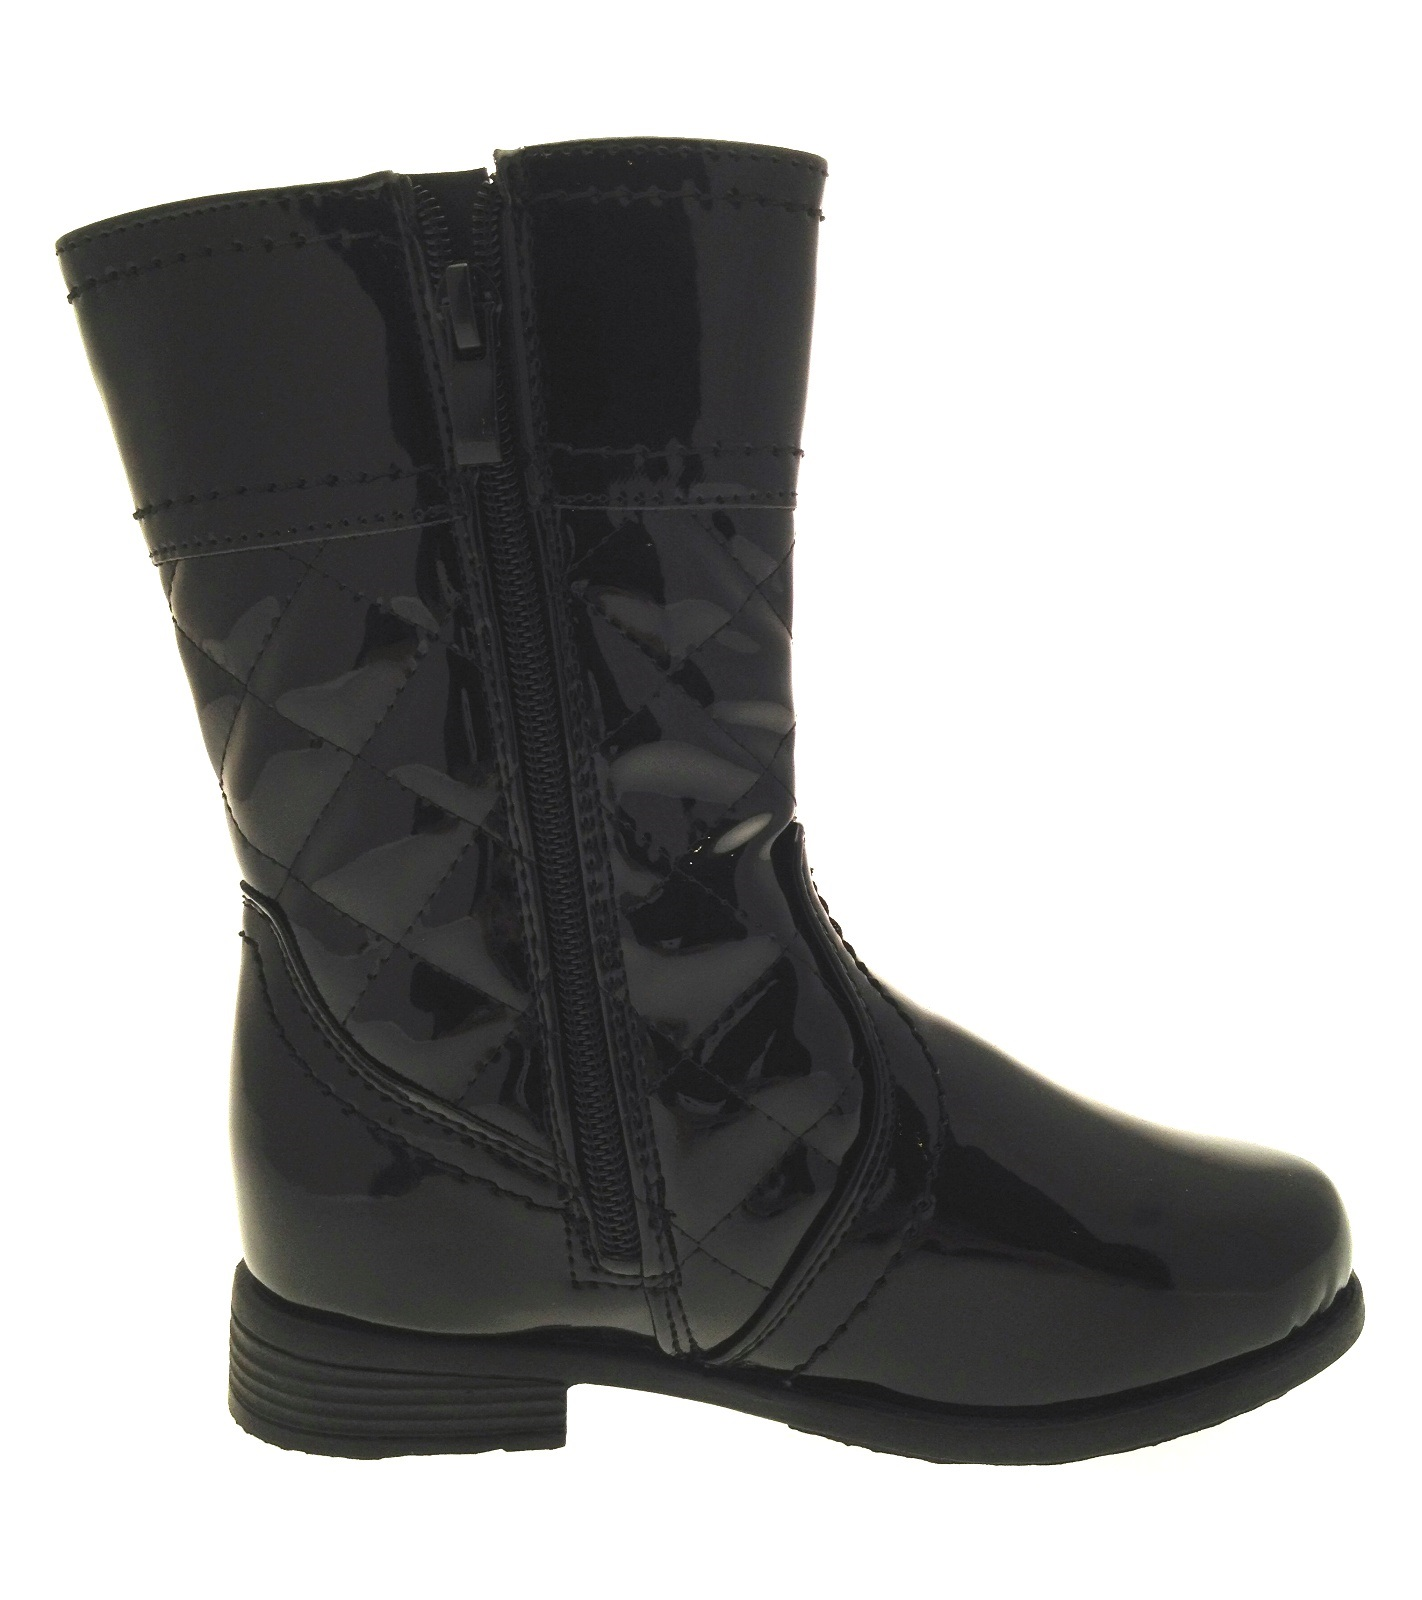 girls boot size 12 - Sizing